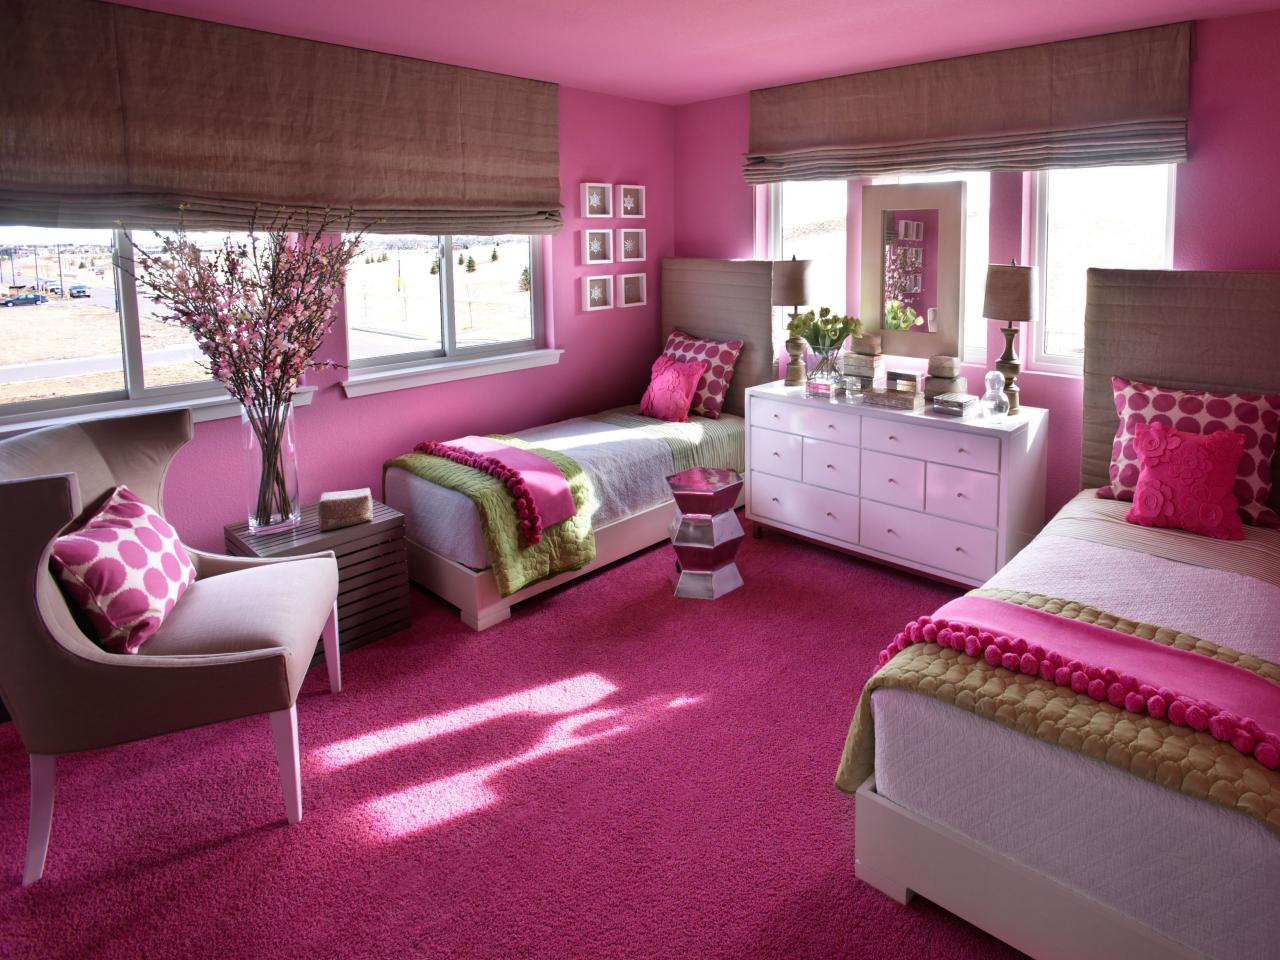 Bedroom paint ideas for girls - Tags